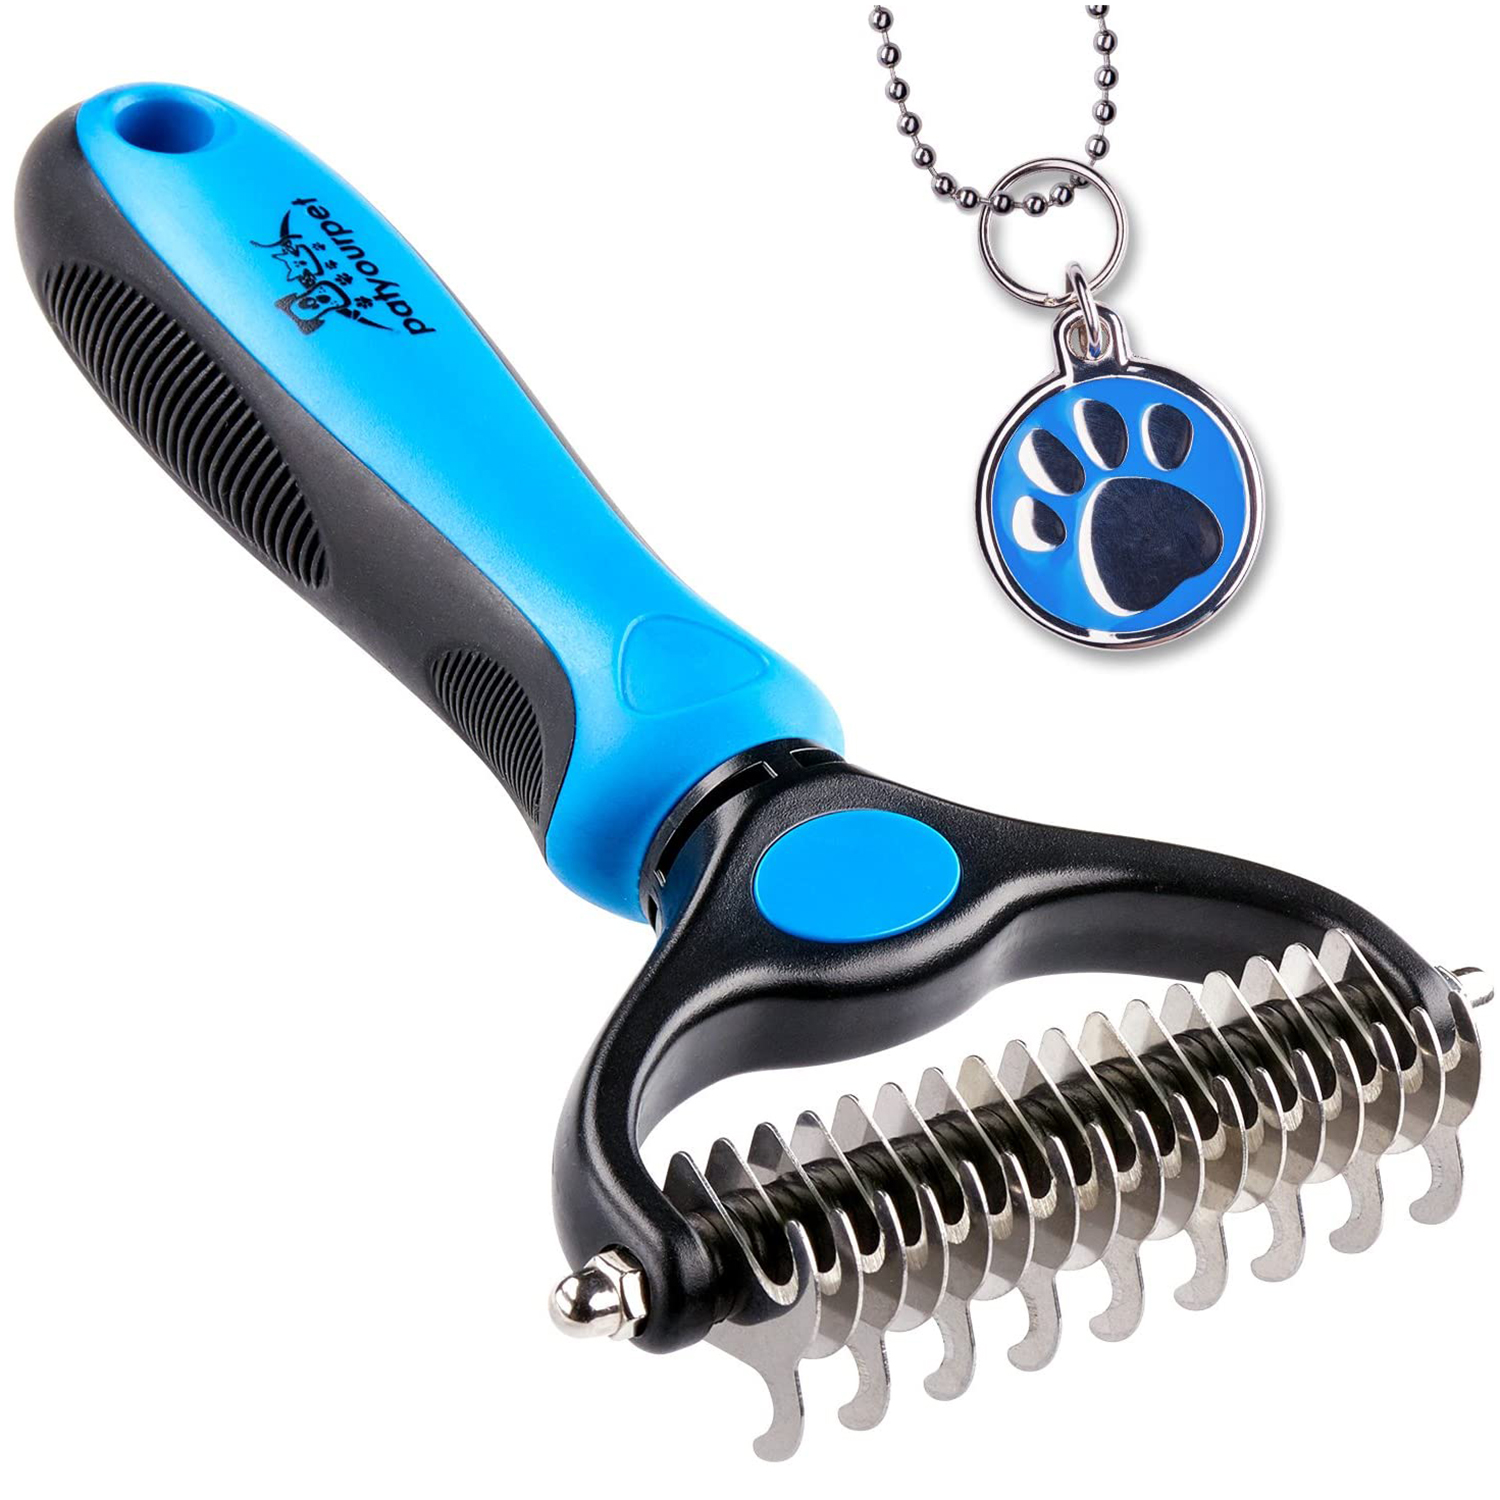 Pet Grooming Tool - 2 Sided Undercoat Rake for Cats & Dogs